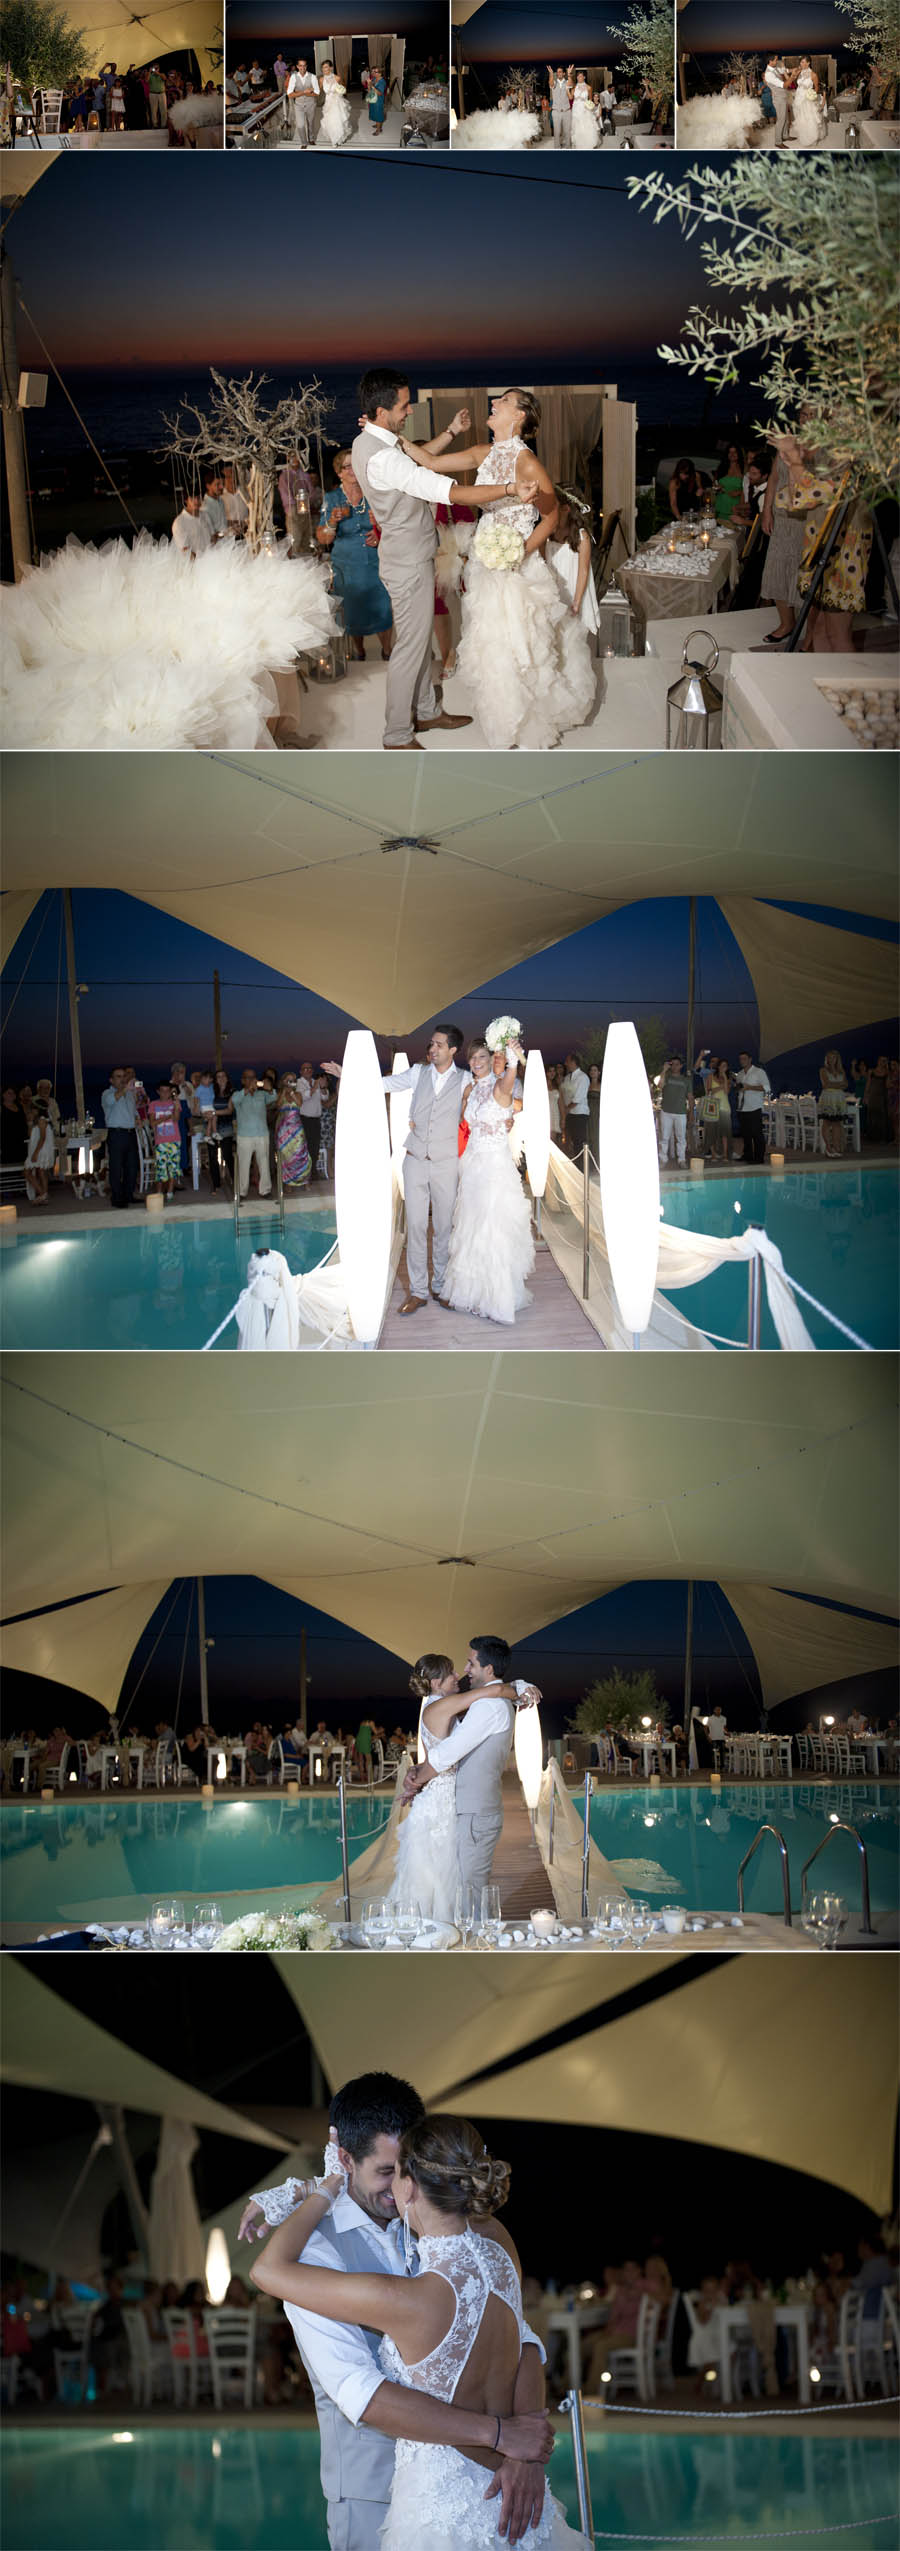 Greece-Lefkada-Wedding-096-copy-7 (1)